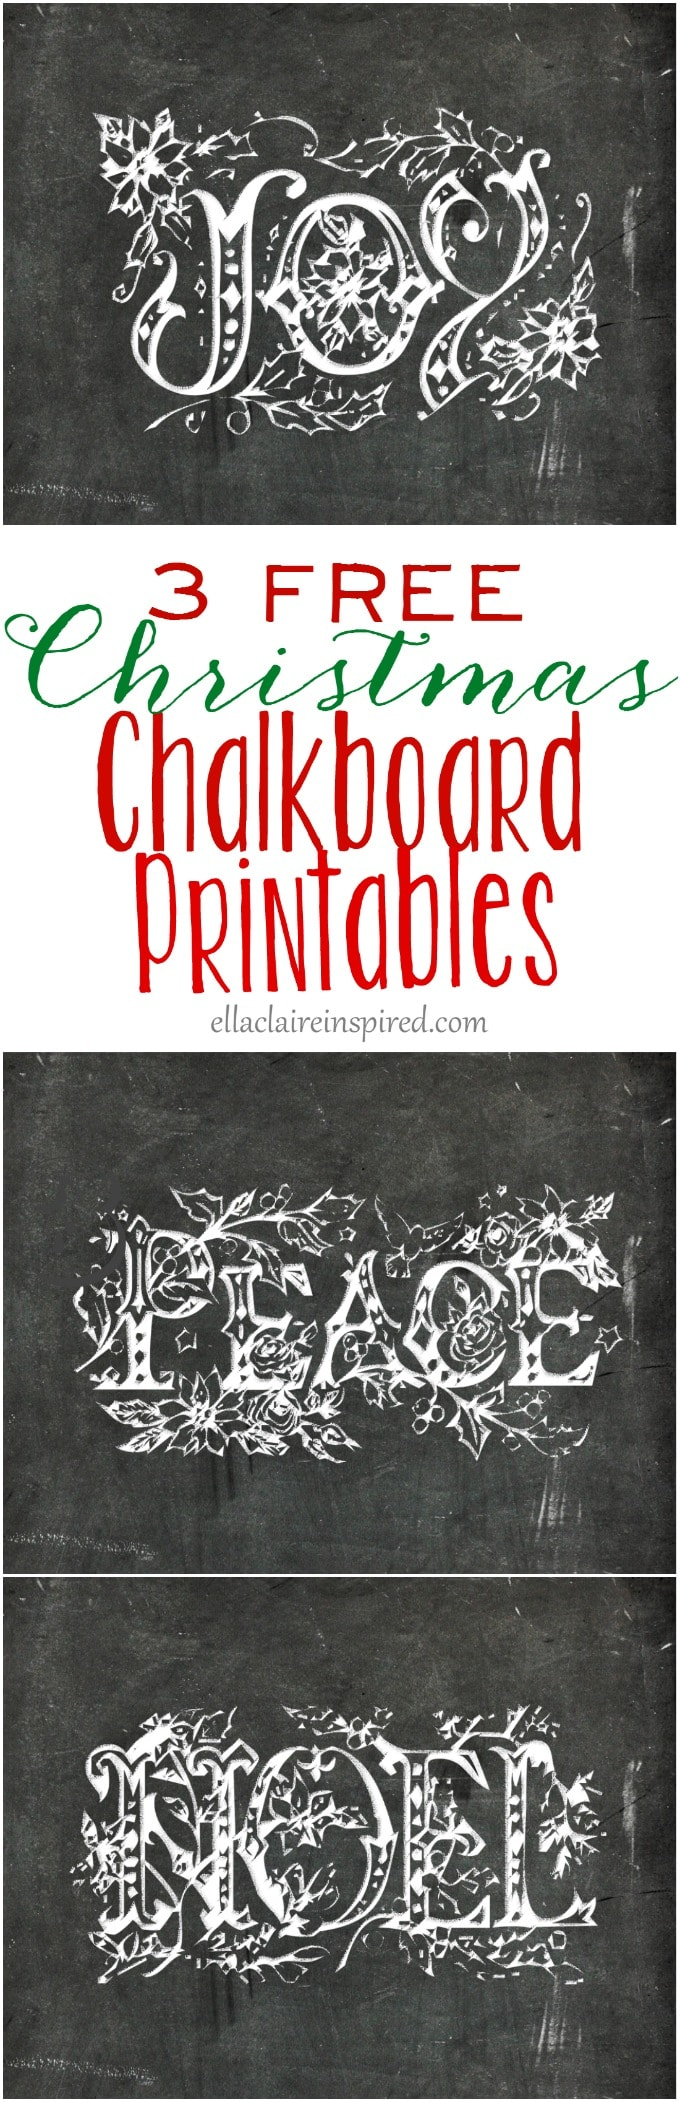 these 3 free chalkboard printables are sure to add vintage charm to your christmas decor this